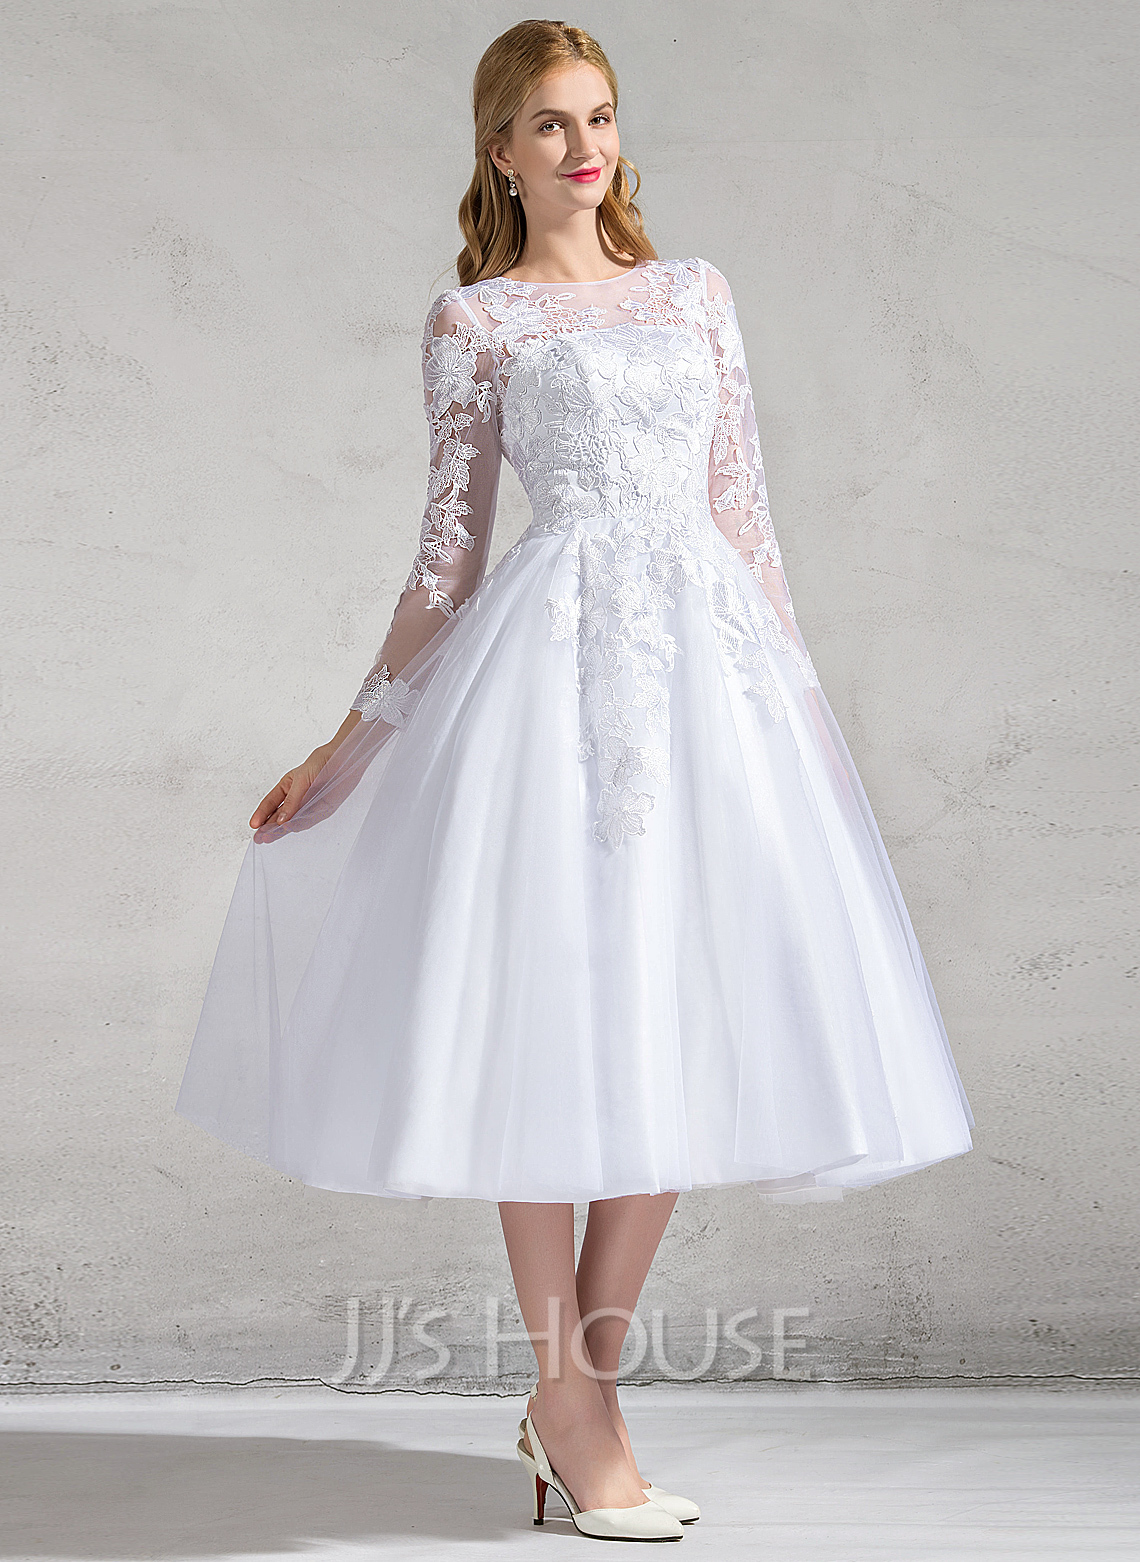 A Line Princess Scoop Neck Tea Length Tulle Lace Wedding Dress With Appliques Lace 002083685